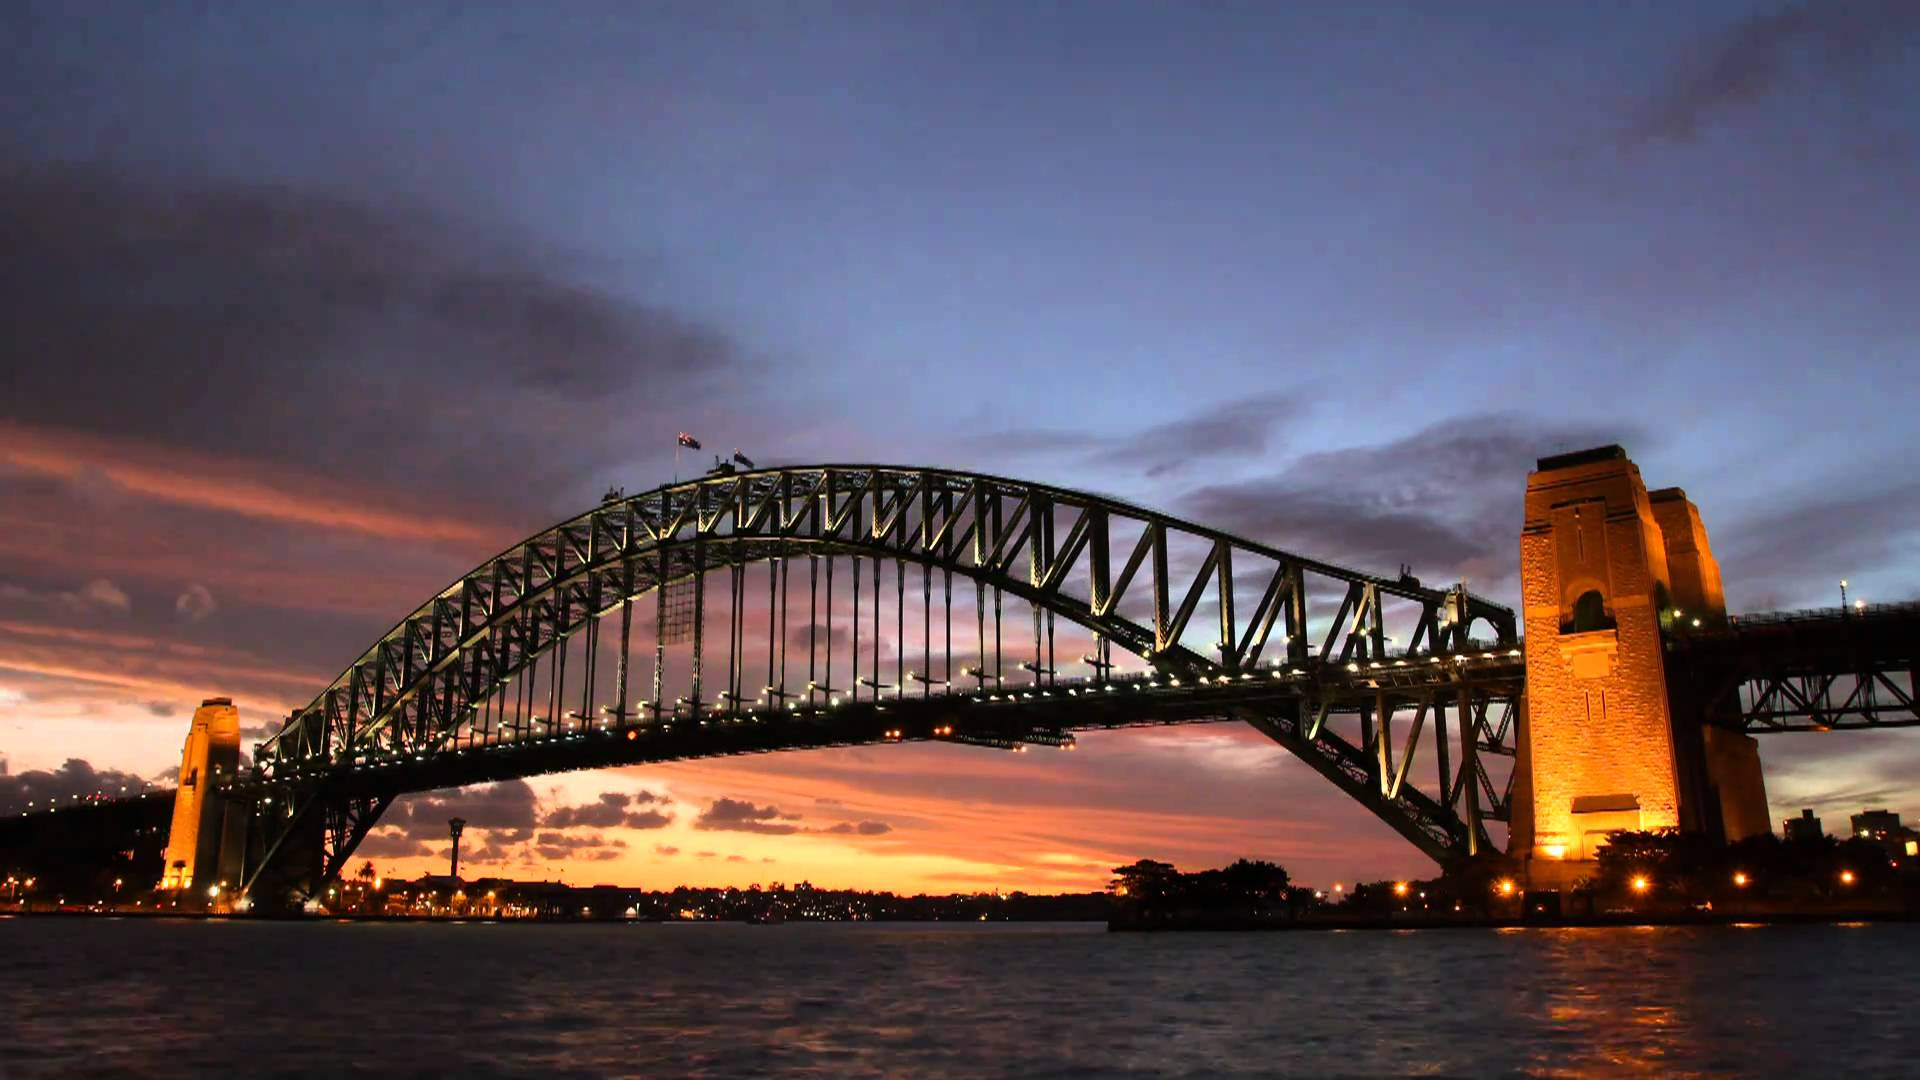 australia sydney harbour bridge attractive wallpapers free downoad hd desktop images laptop best backgrounds